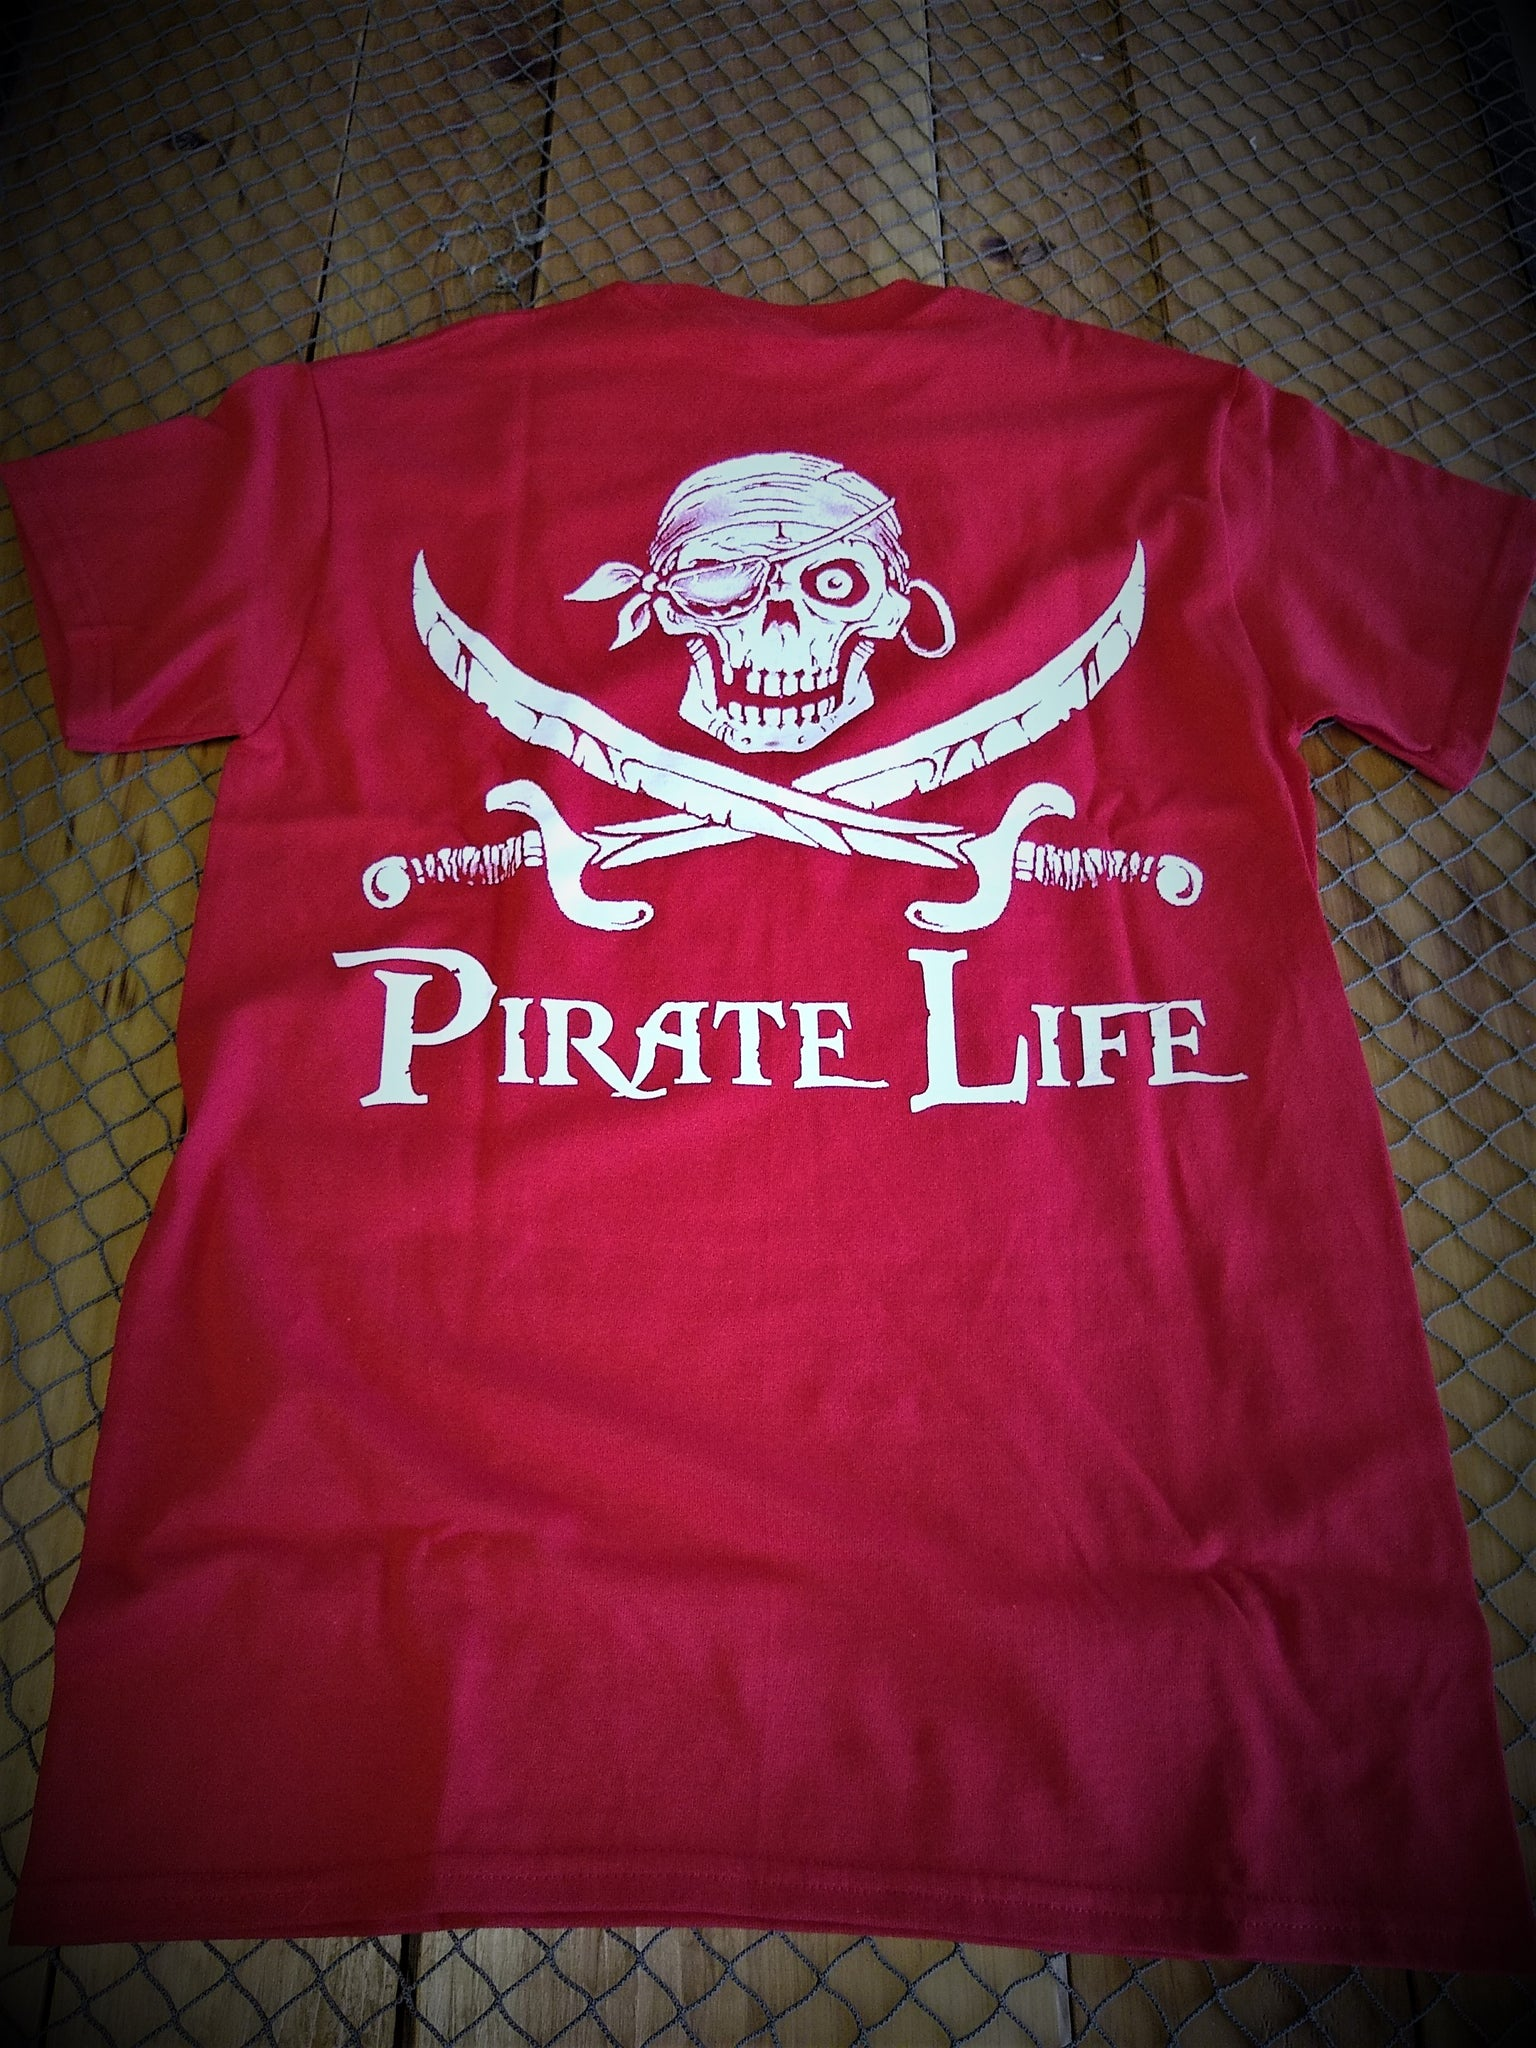 Pirate T-Shirt - Pirate Life